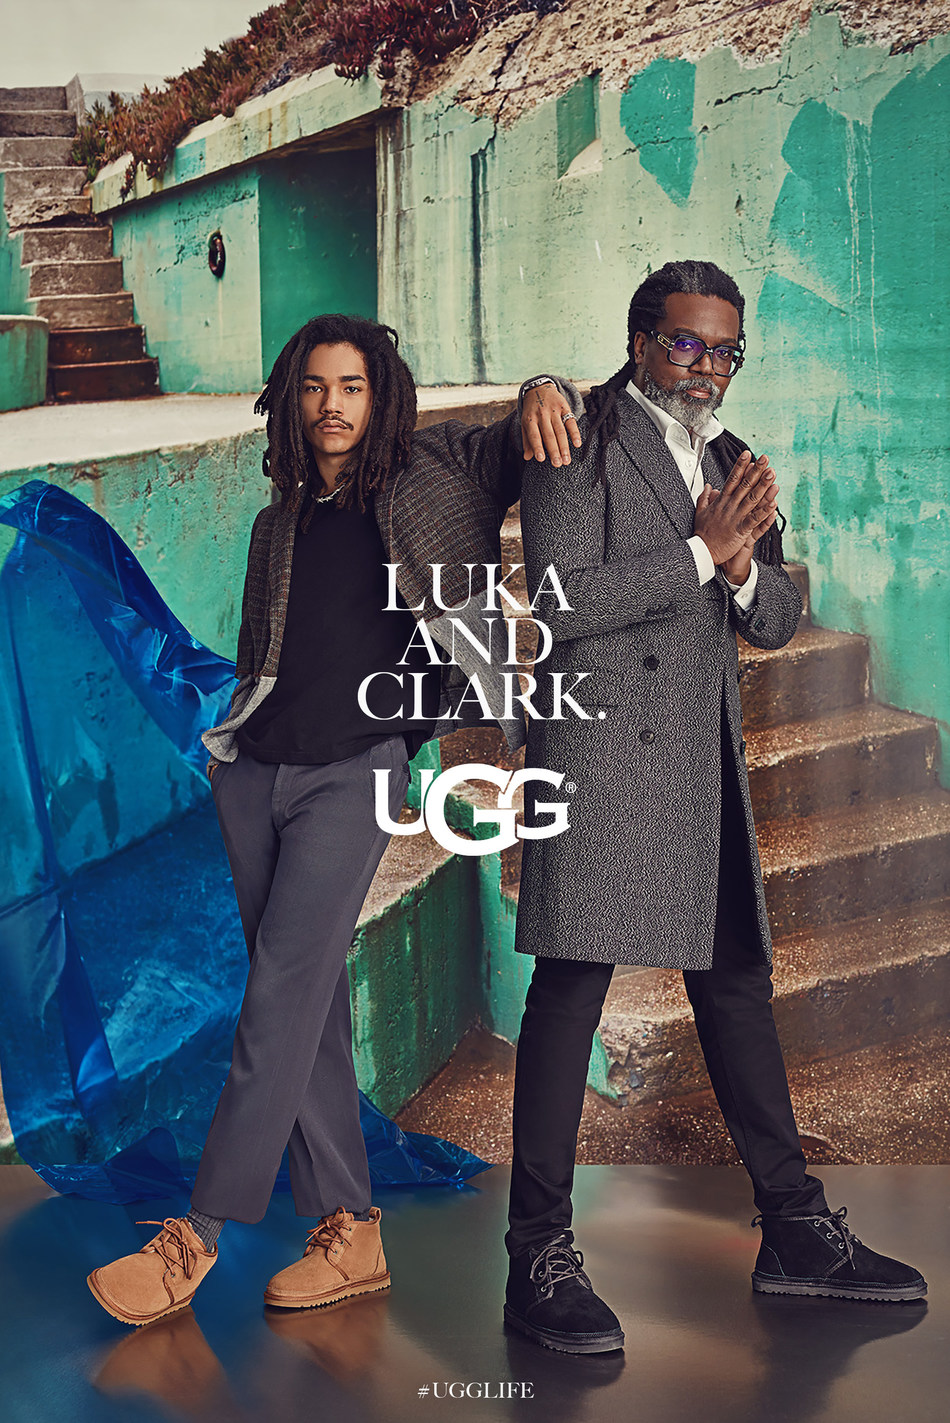 Autumn/Winter 2019 #UGGLIFE Global Campaign Launch featuring Luka and Clark Sabbat